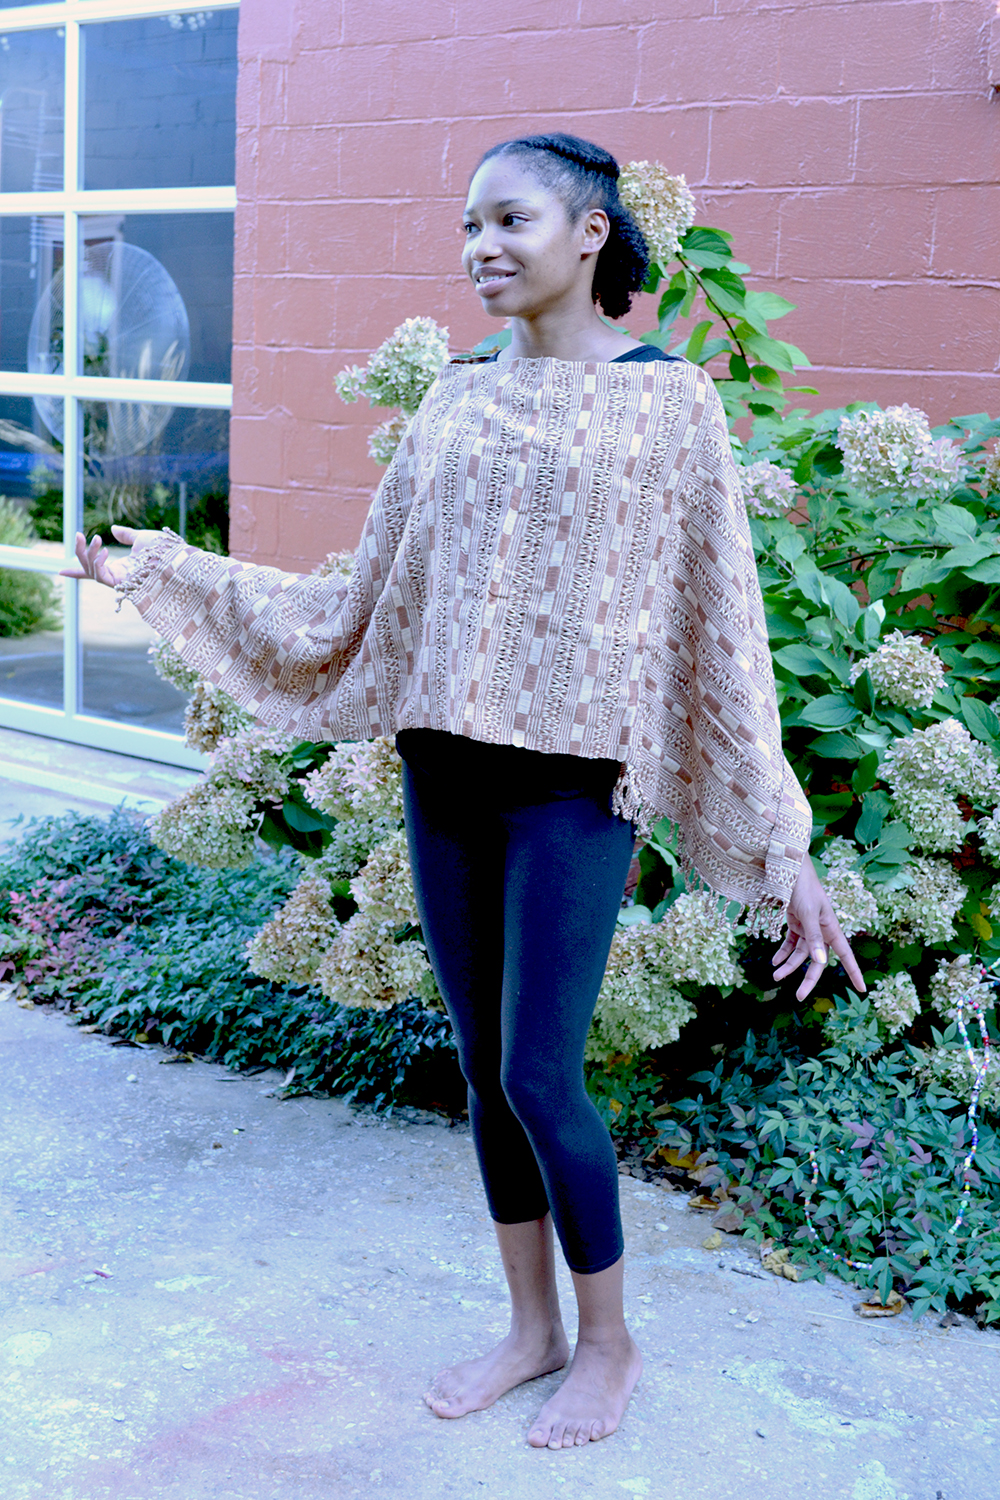 San Juan Poncho in Tan, worn in boatneck style